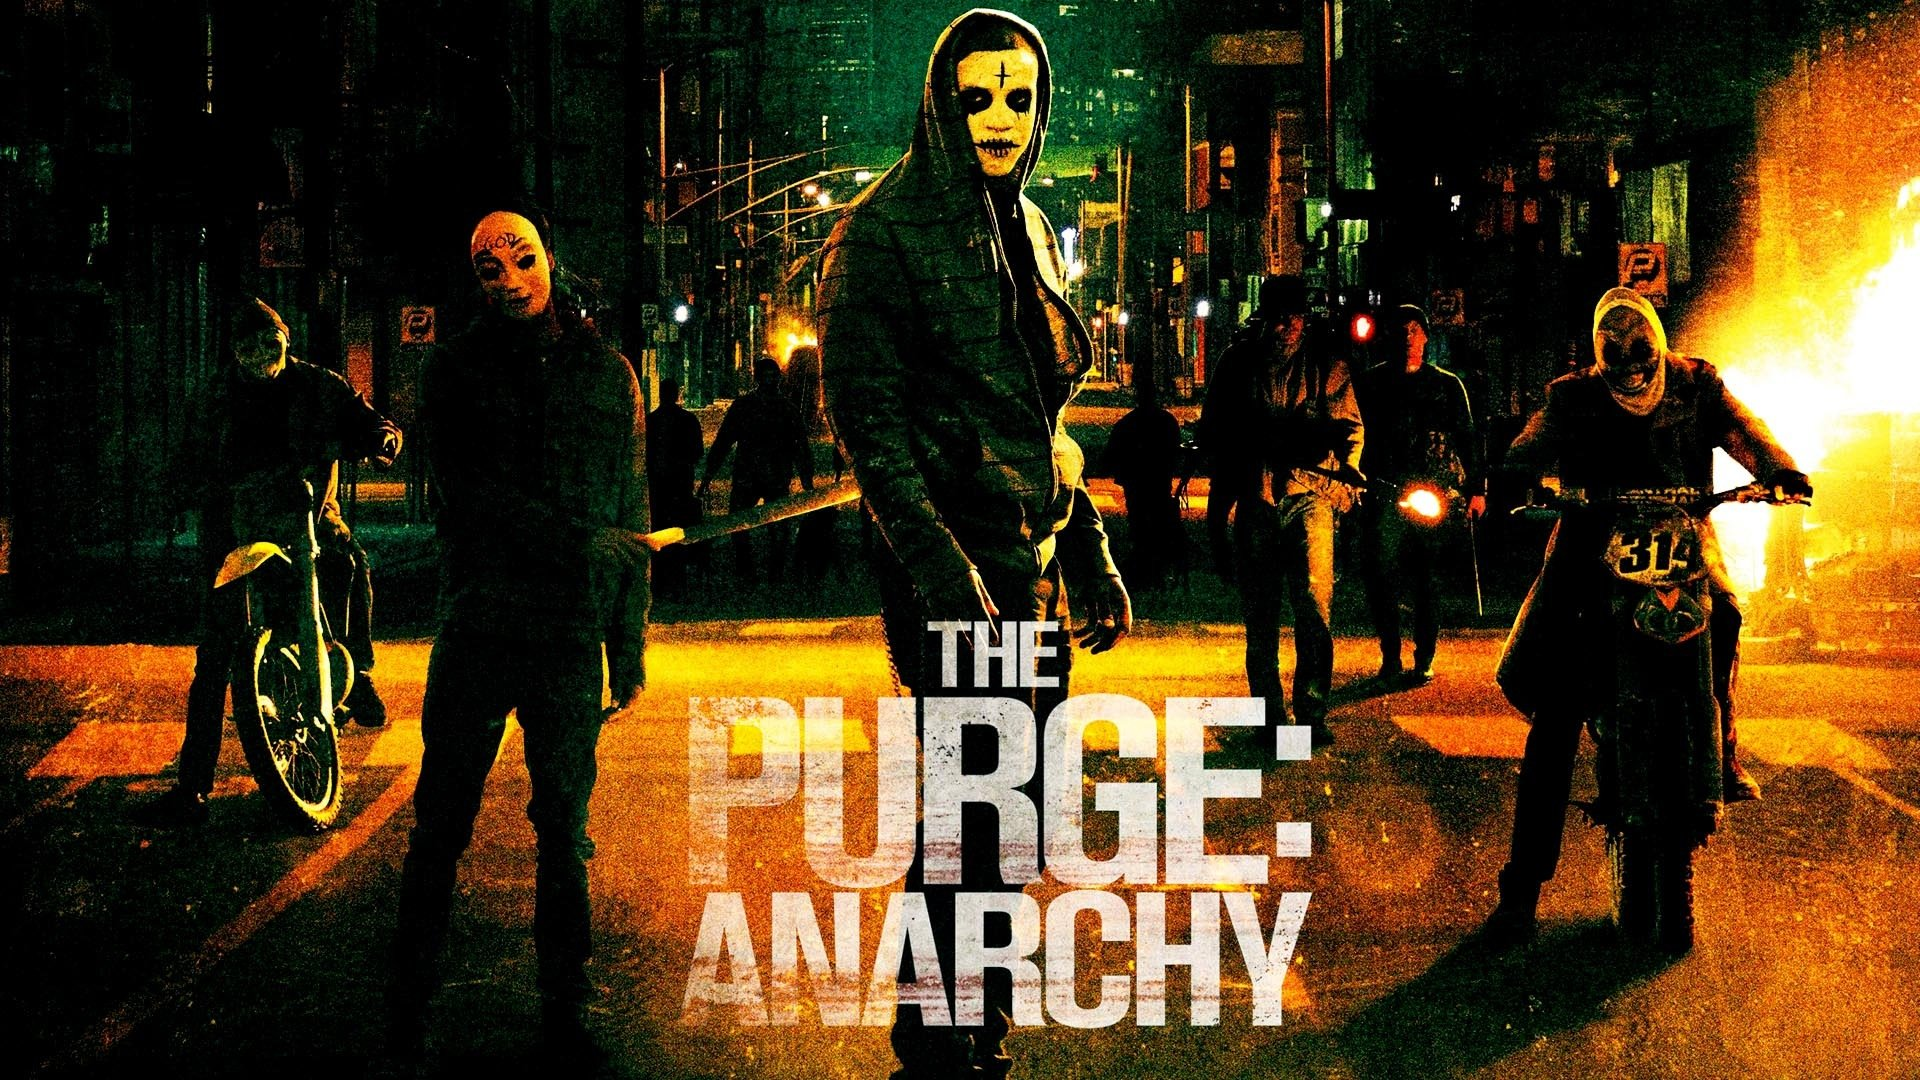 THE-PURGE-ANARCHY horror sci-fi thriller dark purge anarchy